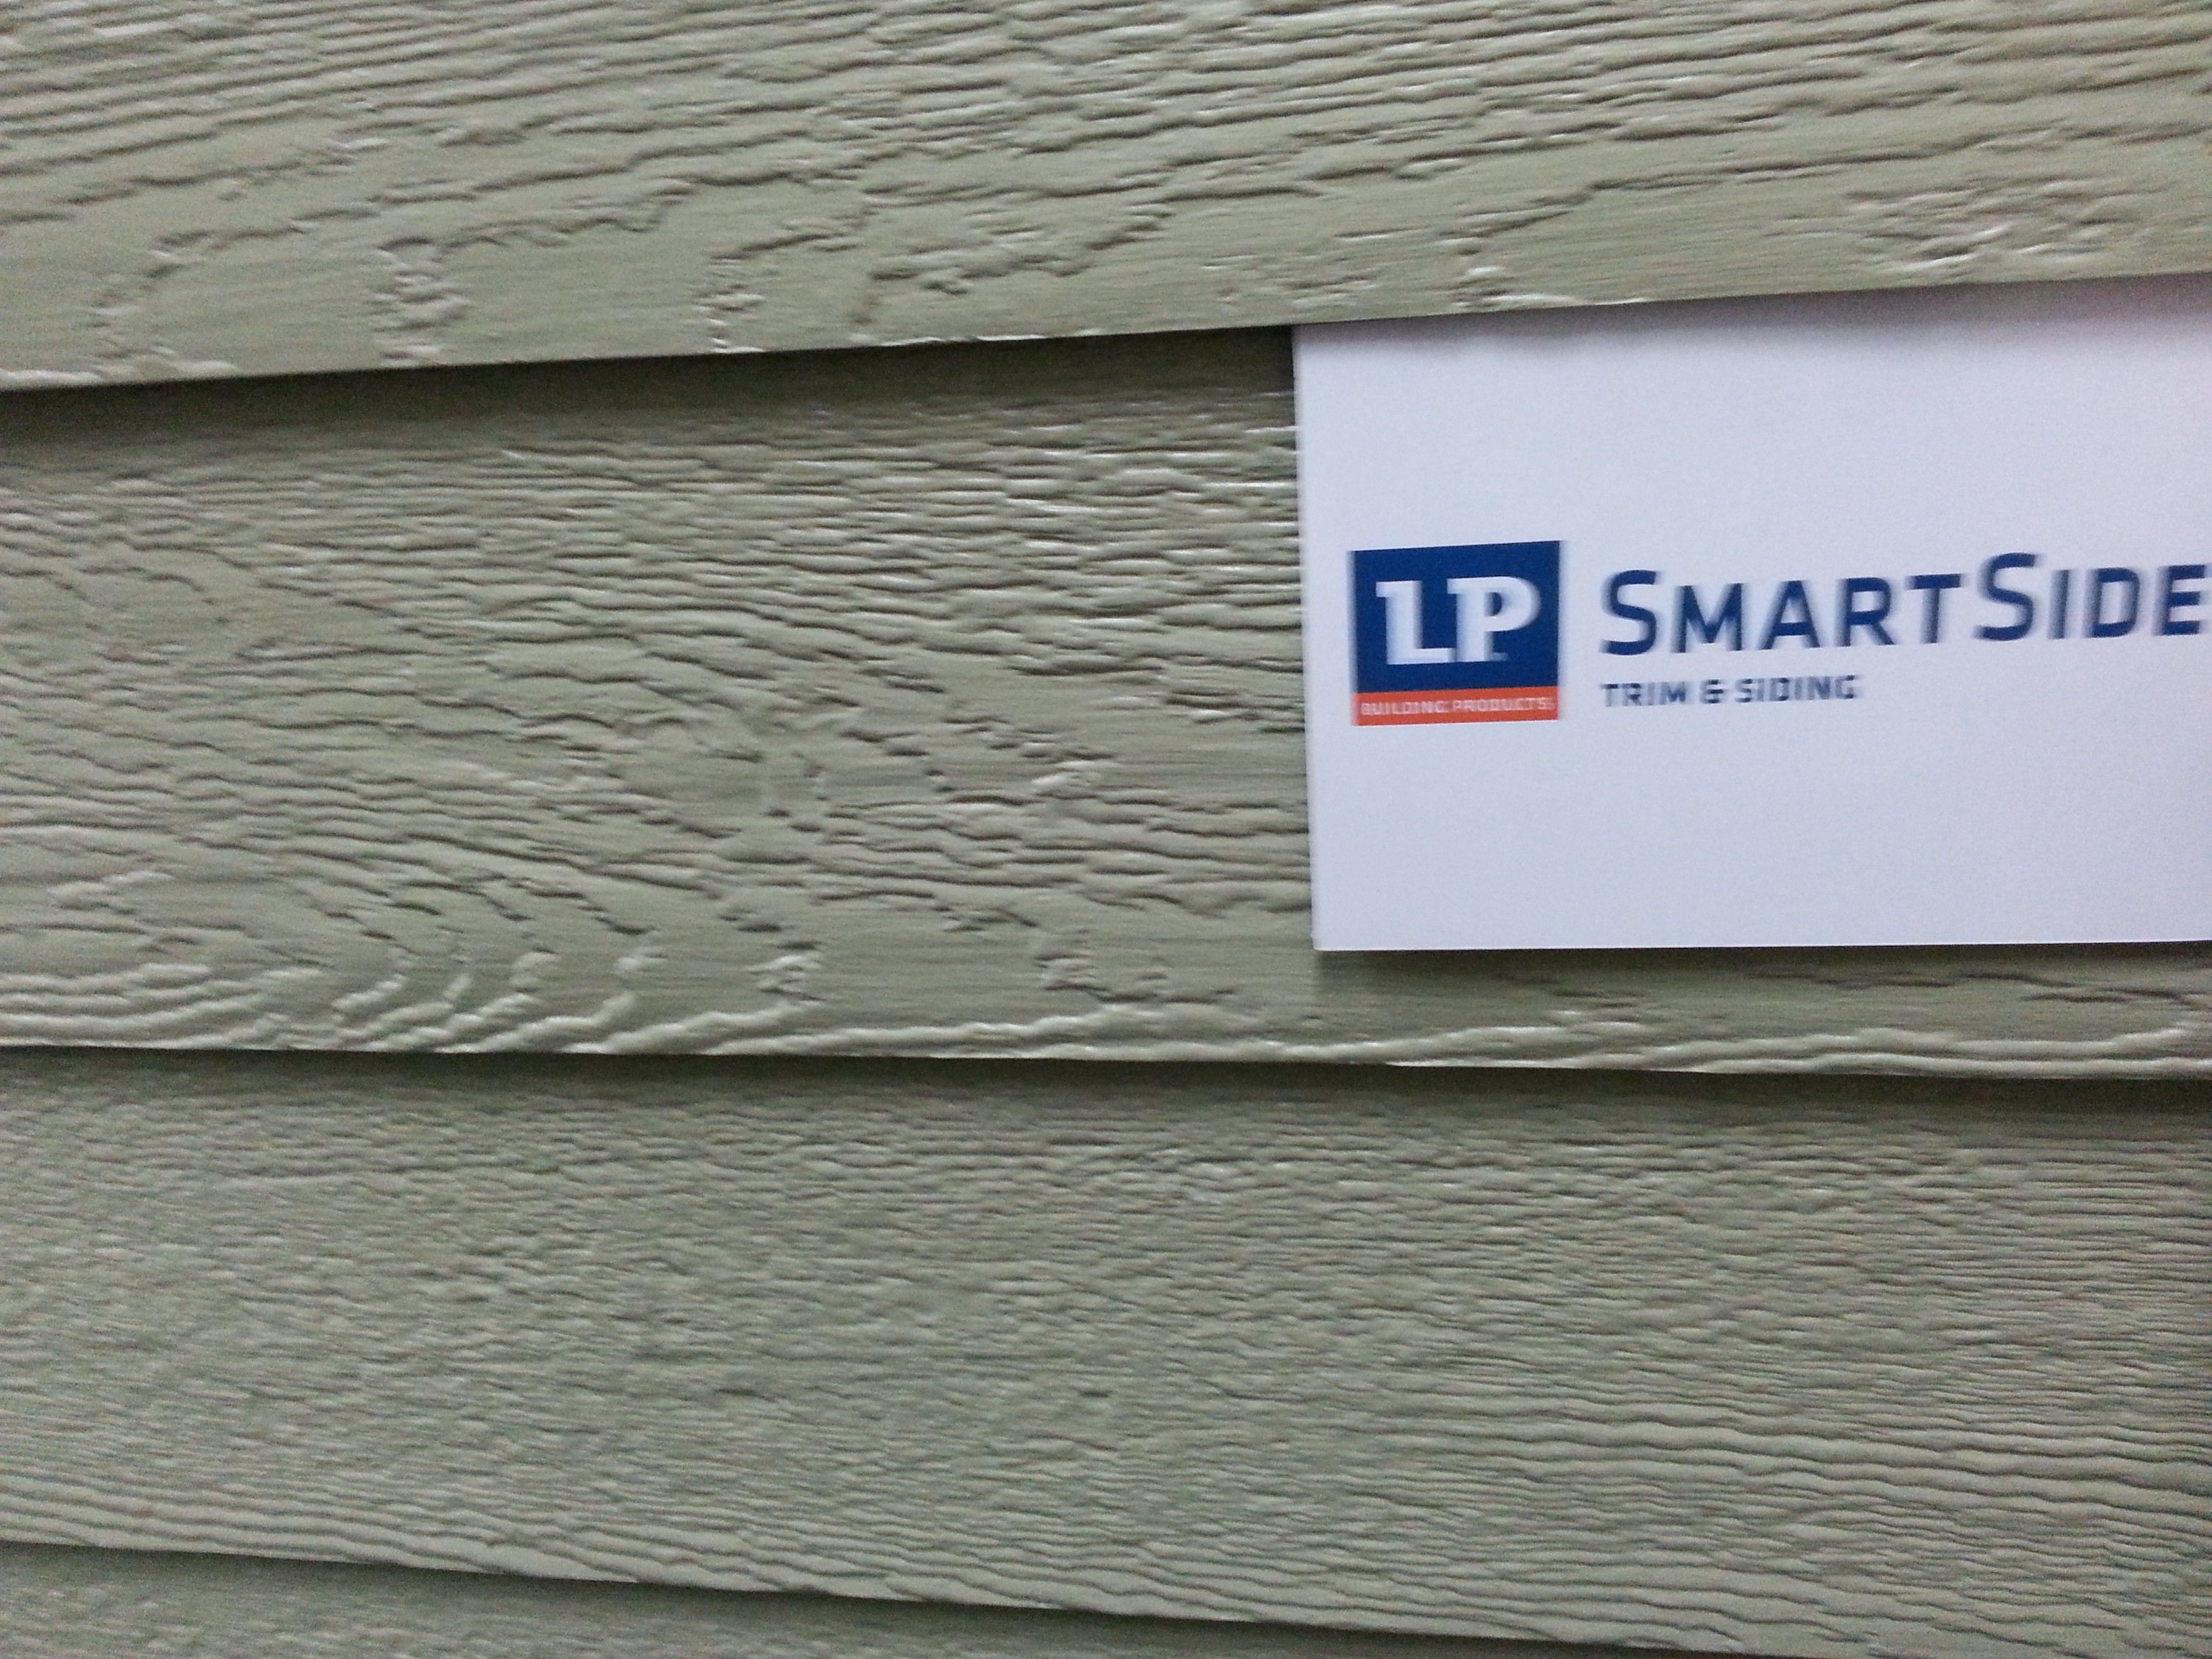 Siding Replacement Wars James Hardie Vs Lp Smartside In A Battle For Contractors Builders And You Replacing Siding Composite Siding Lp Siding